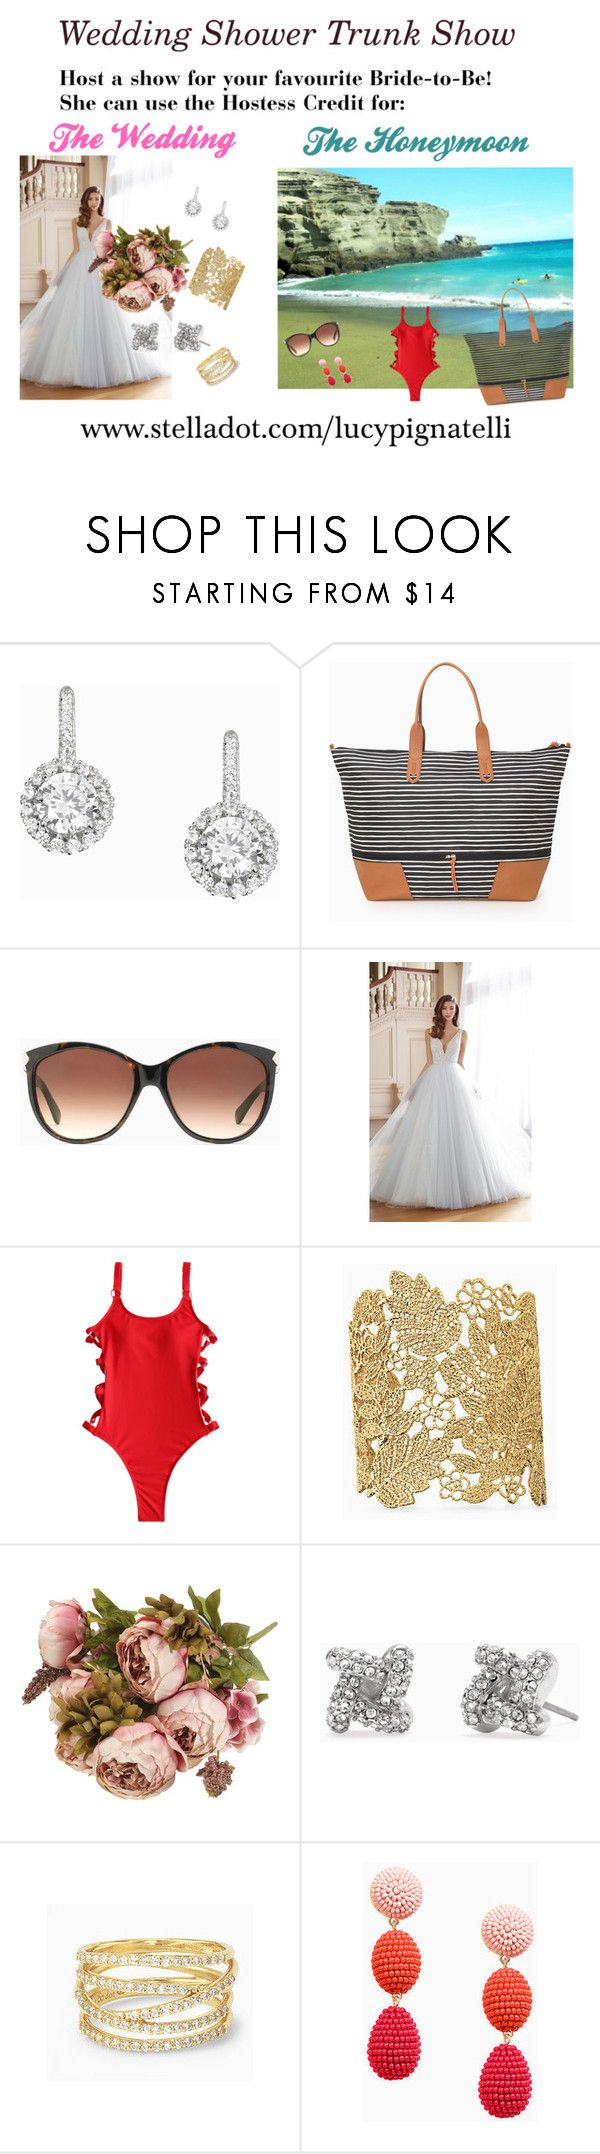 """""""Wedding Shower Trunk Show"""" by lucypignatelli on Polyvore featuring Stella & Dot, Southpoint and David Tutera"""